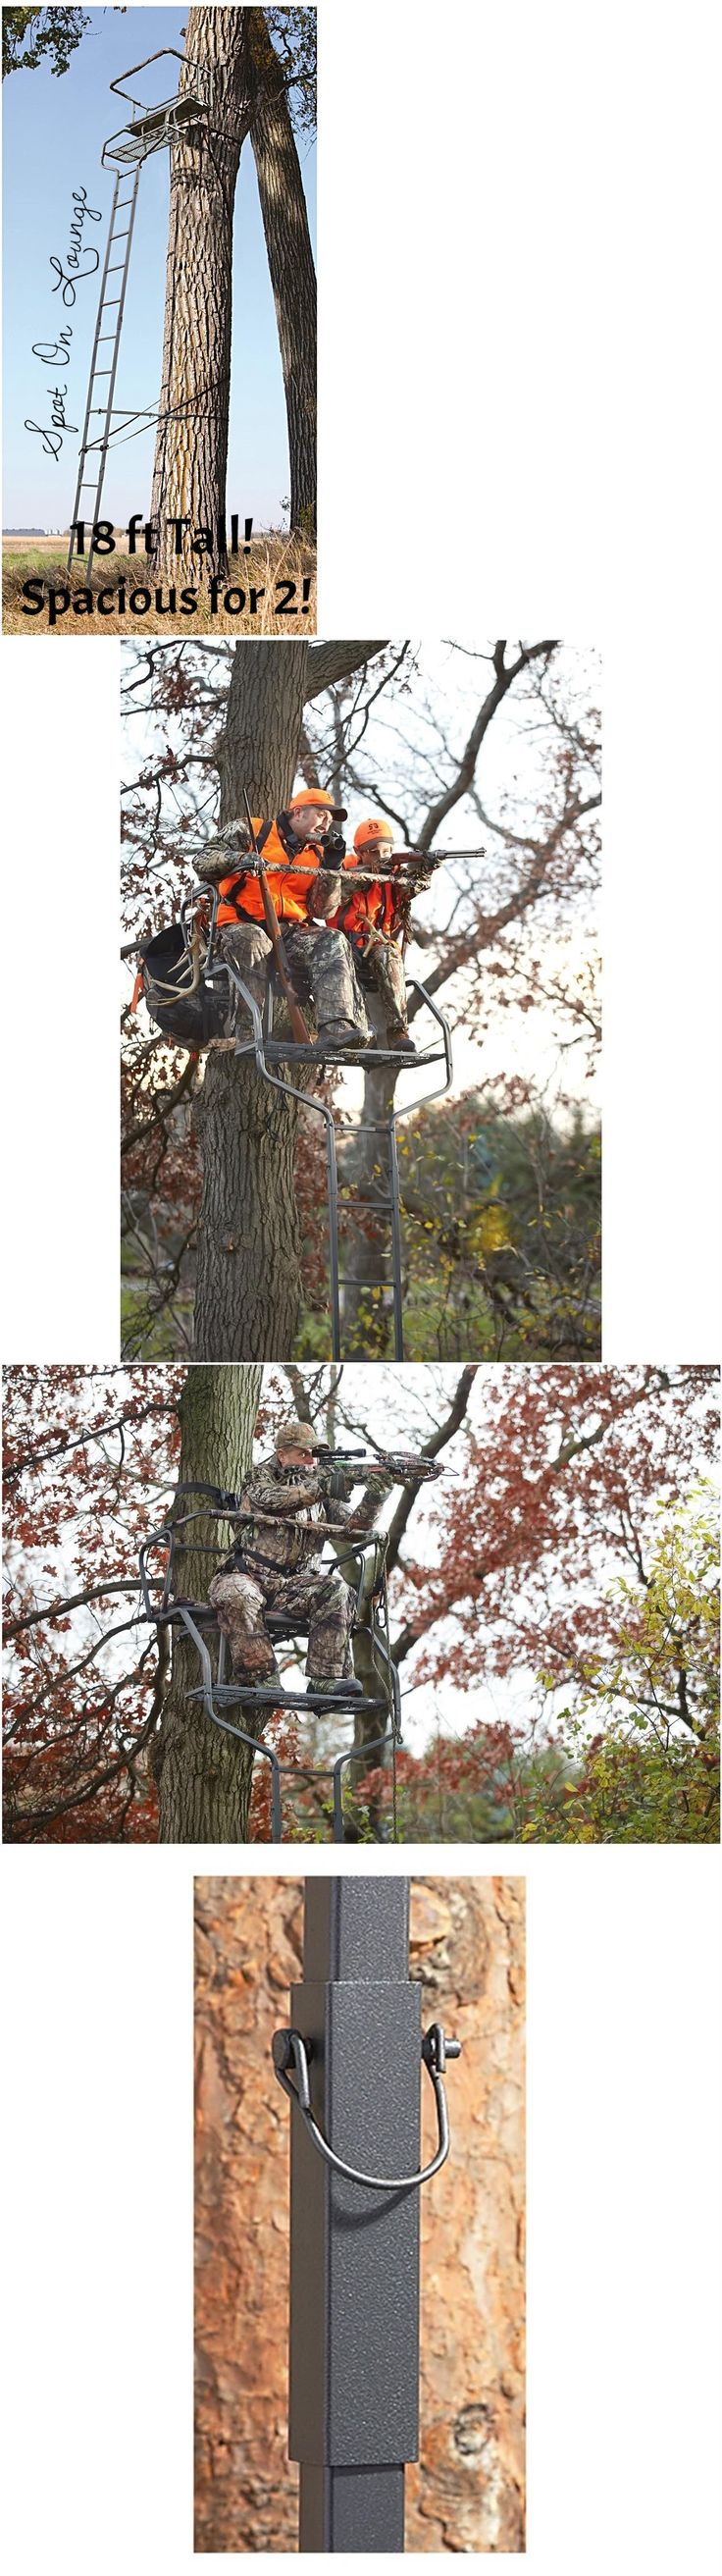 17 best ideas about tree stand hunting on pinterest deer for Climbing tree stand plans